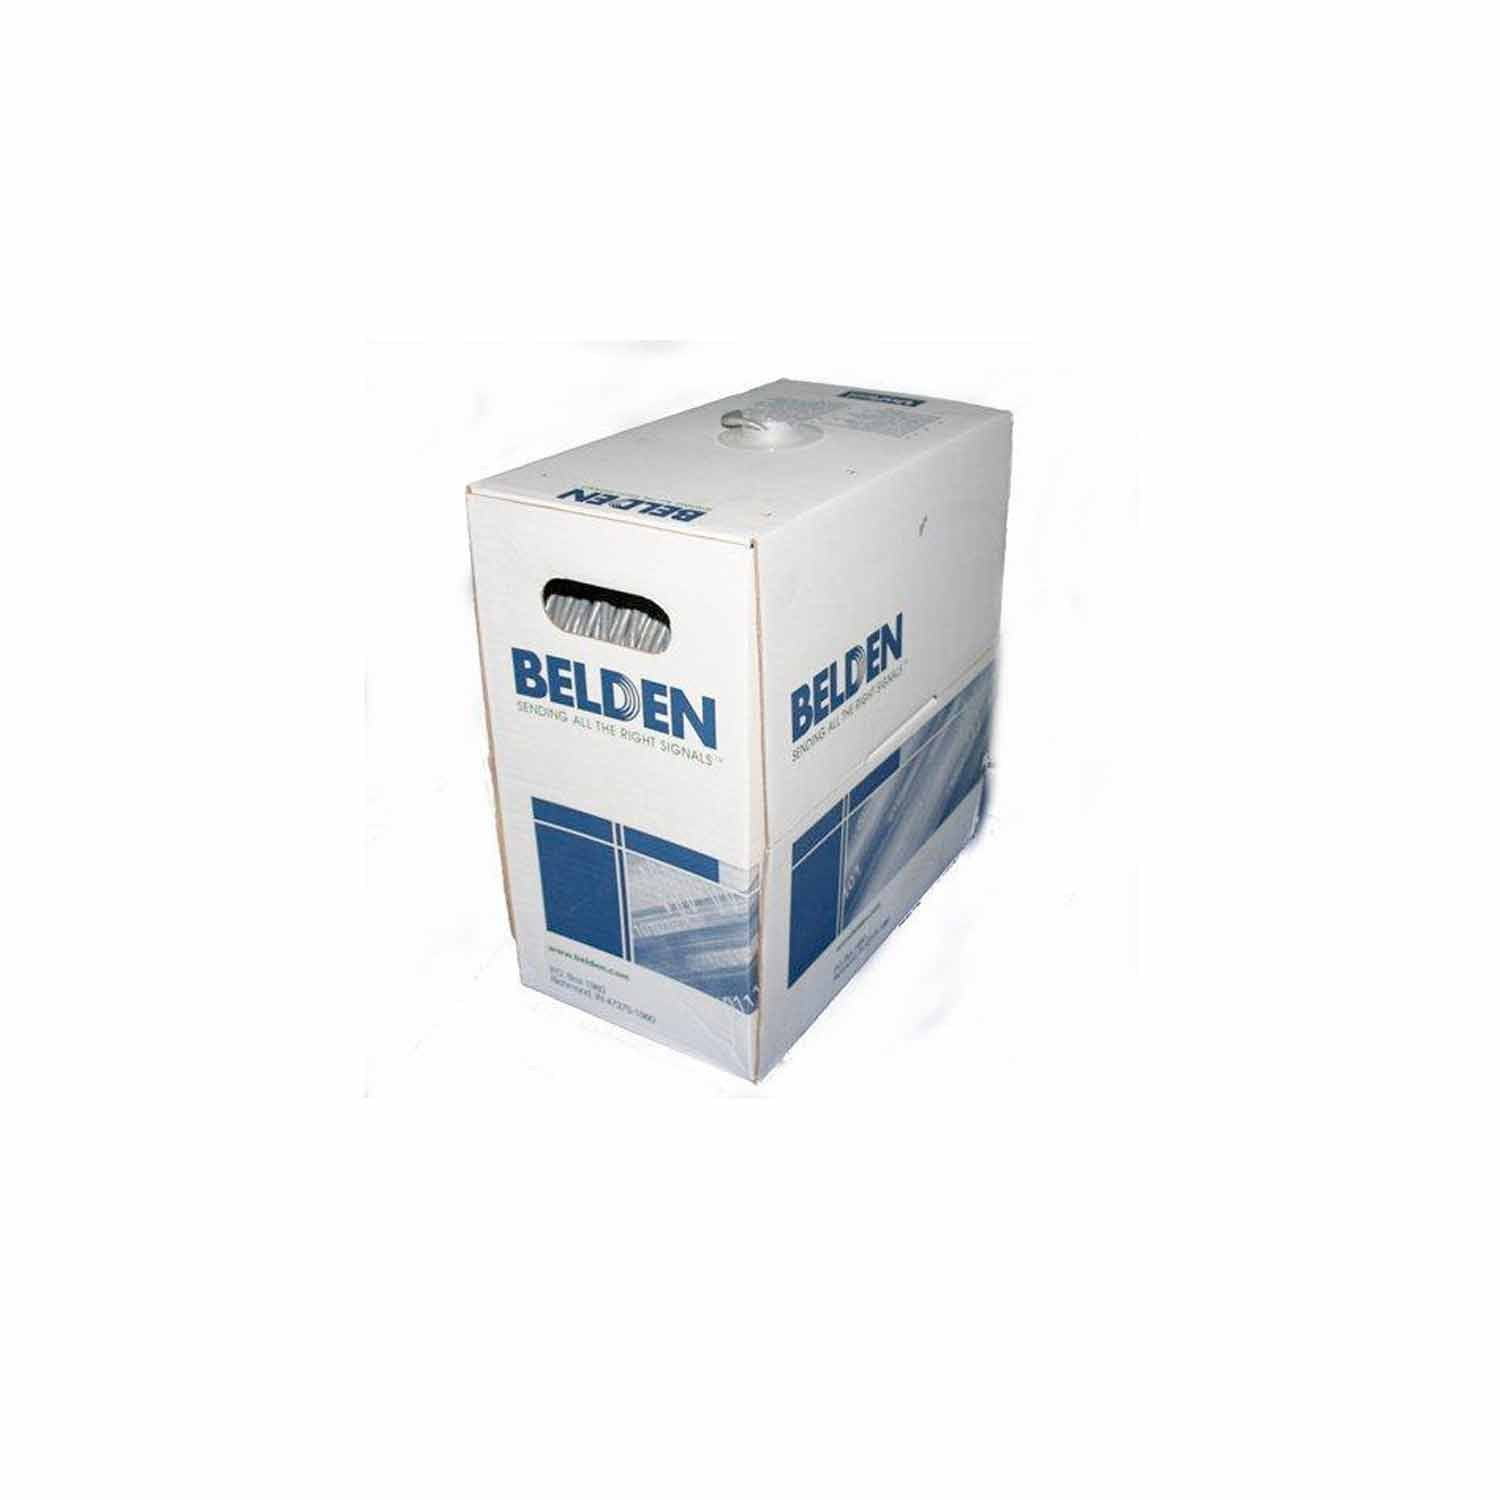 Belden 7814A Cat6 UTP Cable